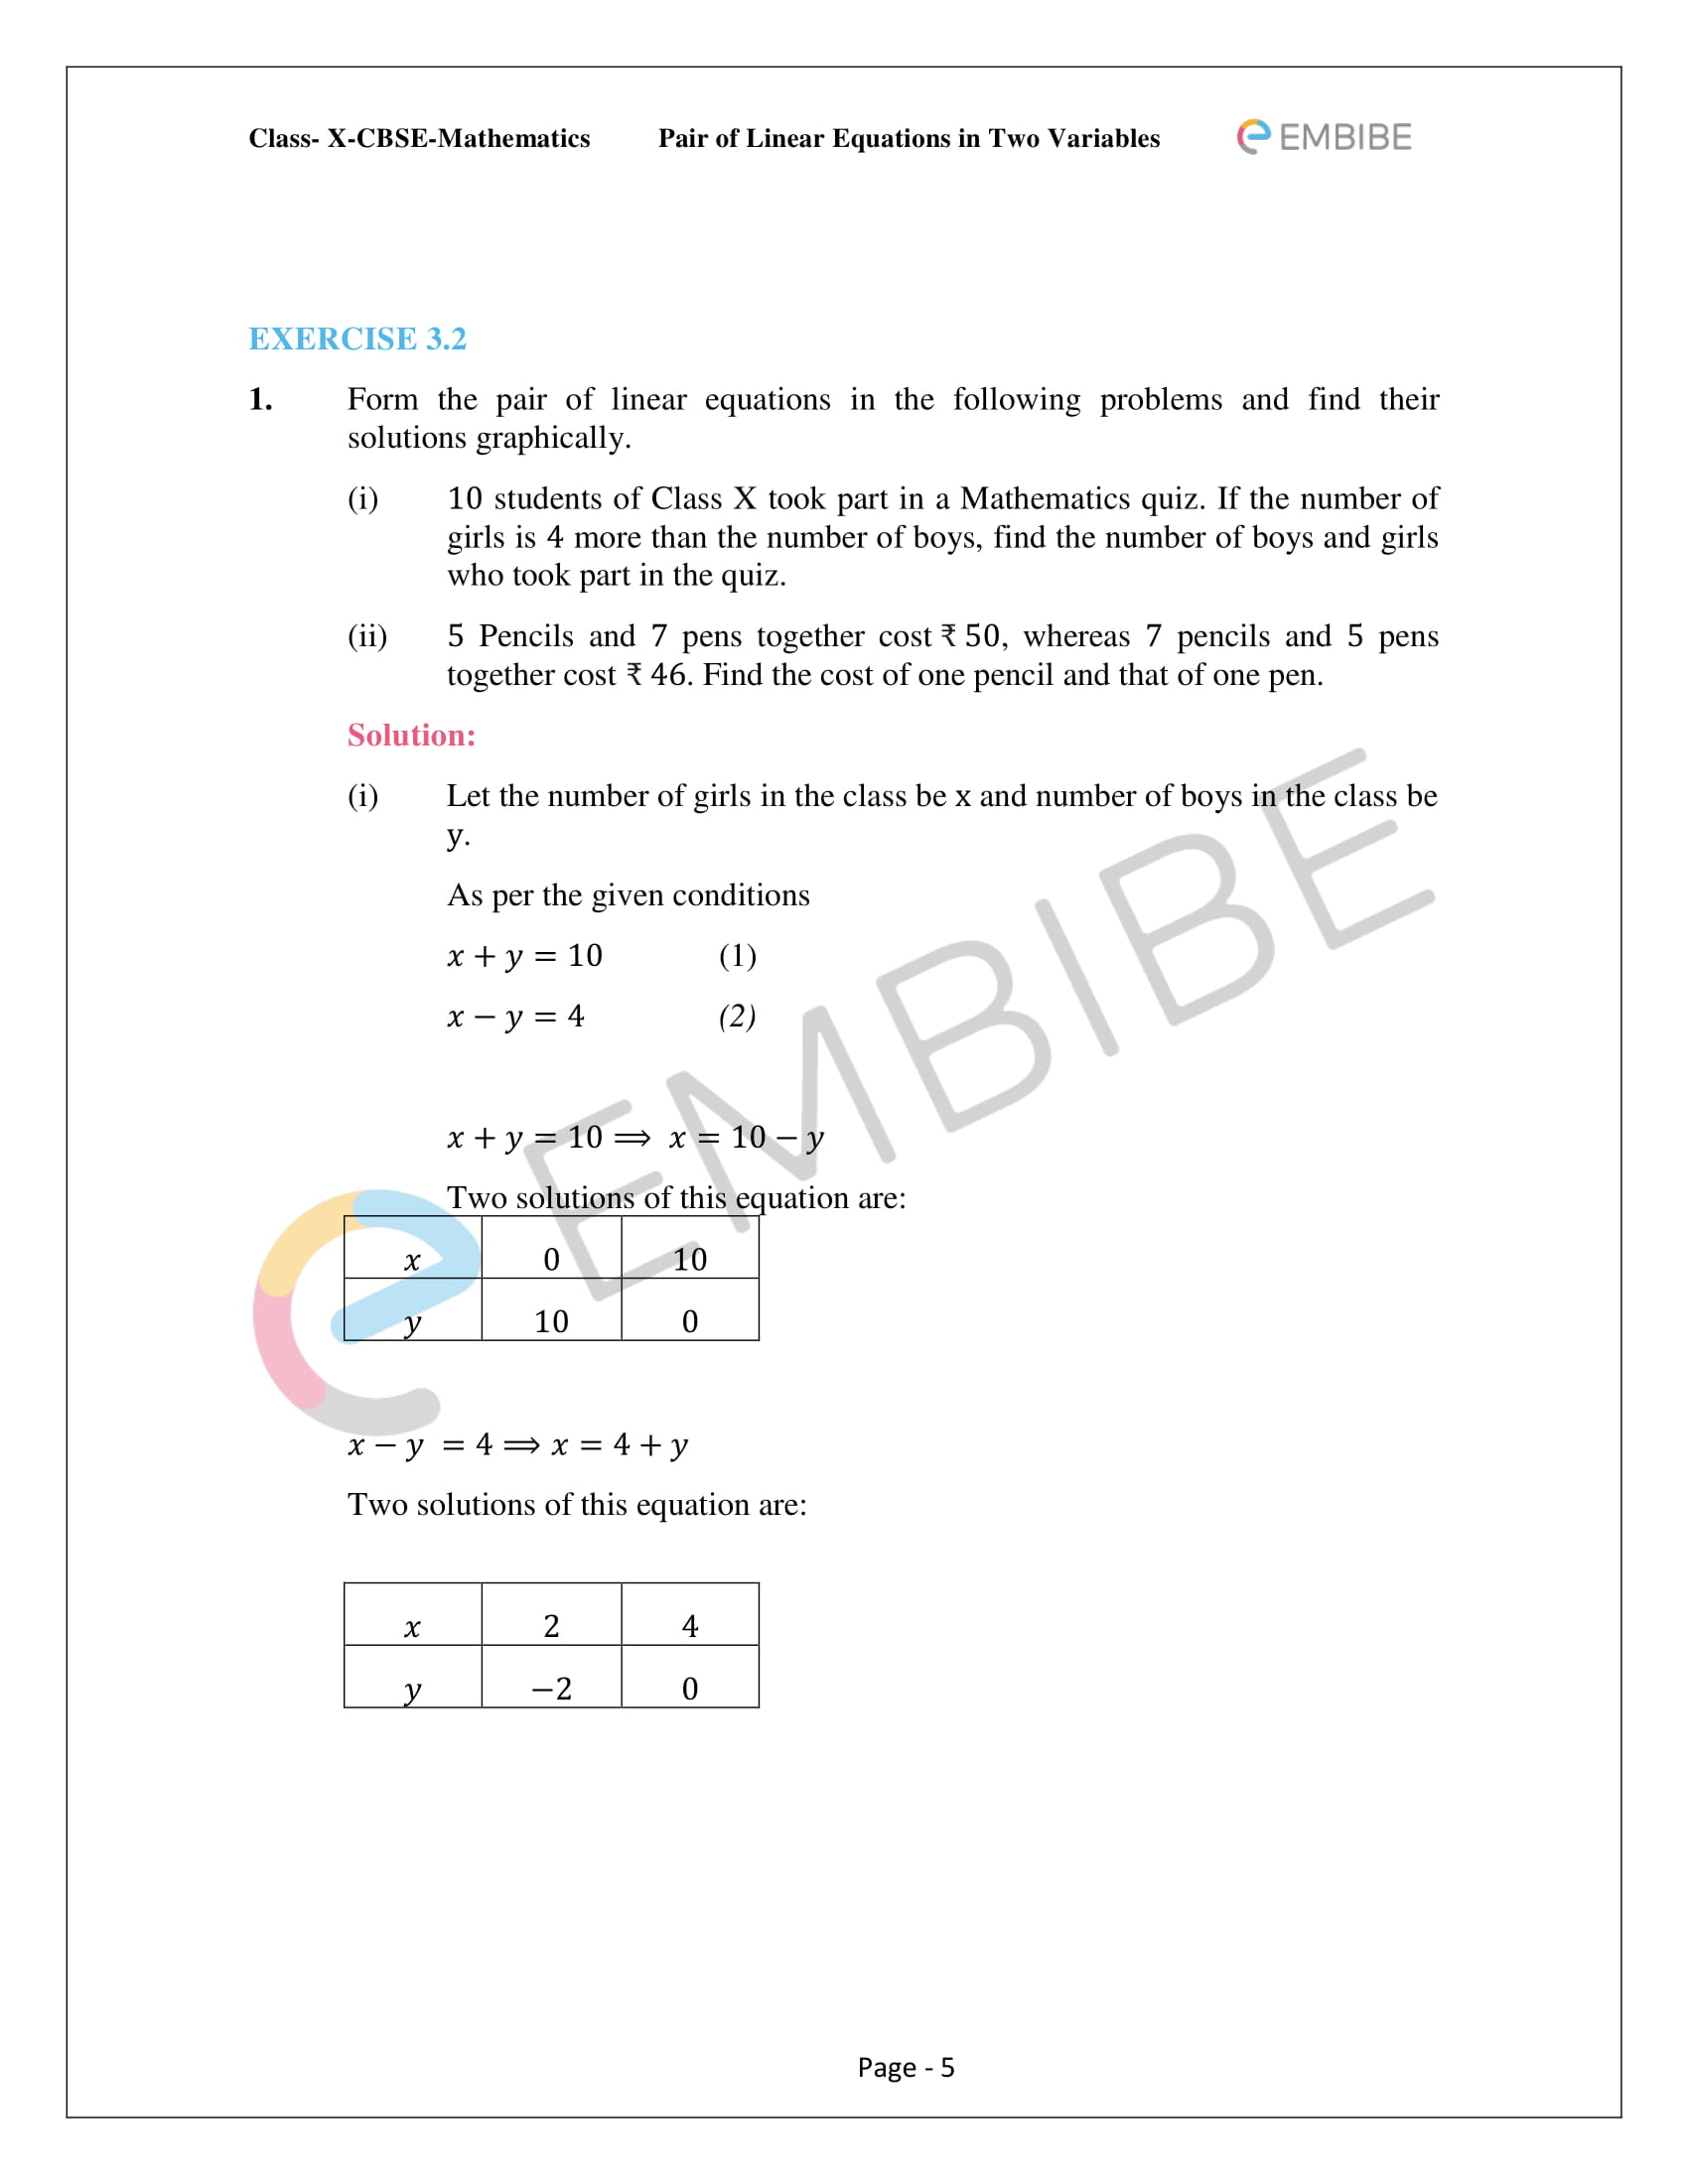 CBSE NCERT Solutions For Class 10 Maths Chapter 3 - Pair of Linear Equations In Two Variables - 5